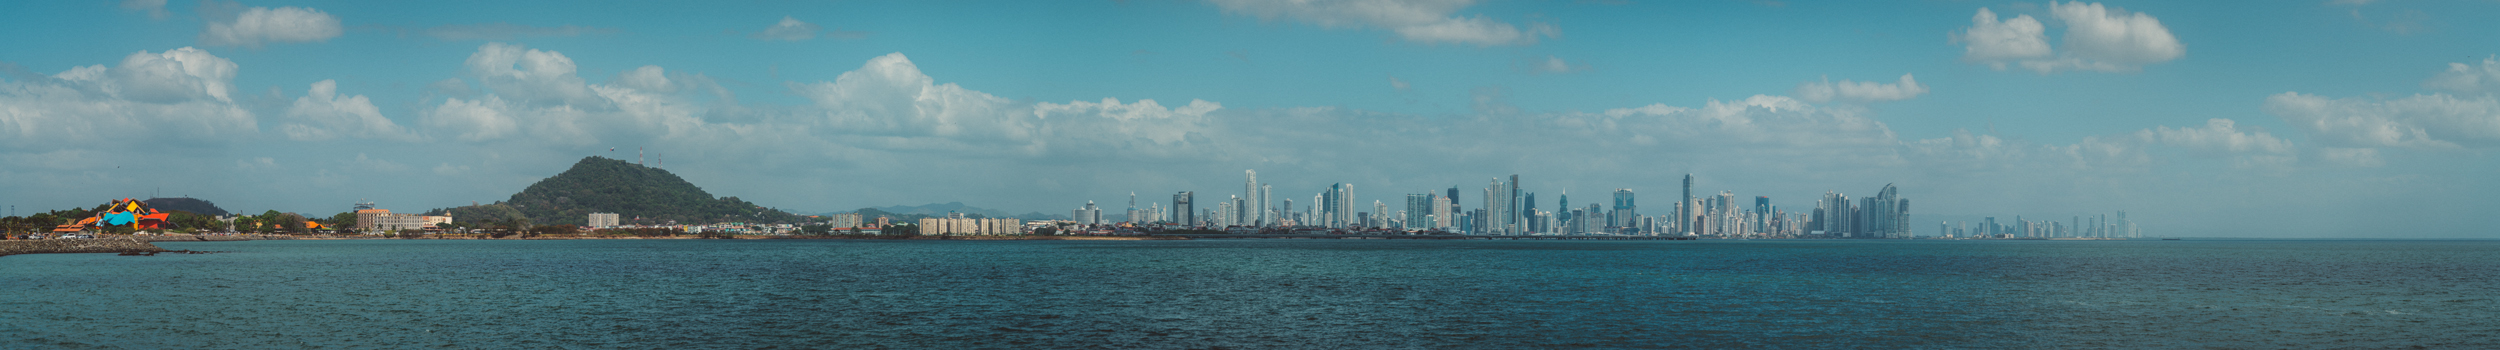 Now for the Panama photos. This is a panorama of Panama City taken from the Amador Causeway. I really wish I'd gone back and taken this photo again during golden hour, but alas this is what I've got. That multicoloured building on the right is the Bio Museum.